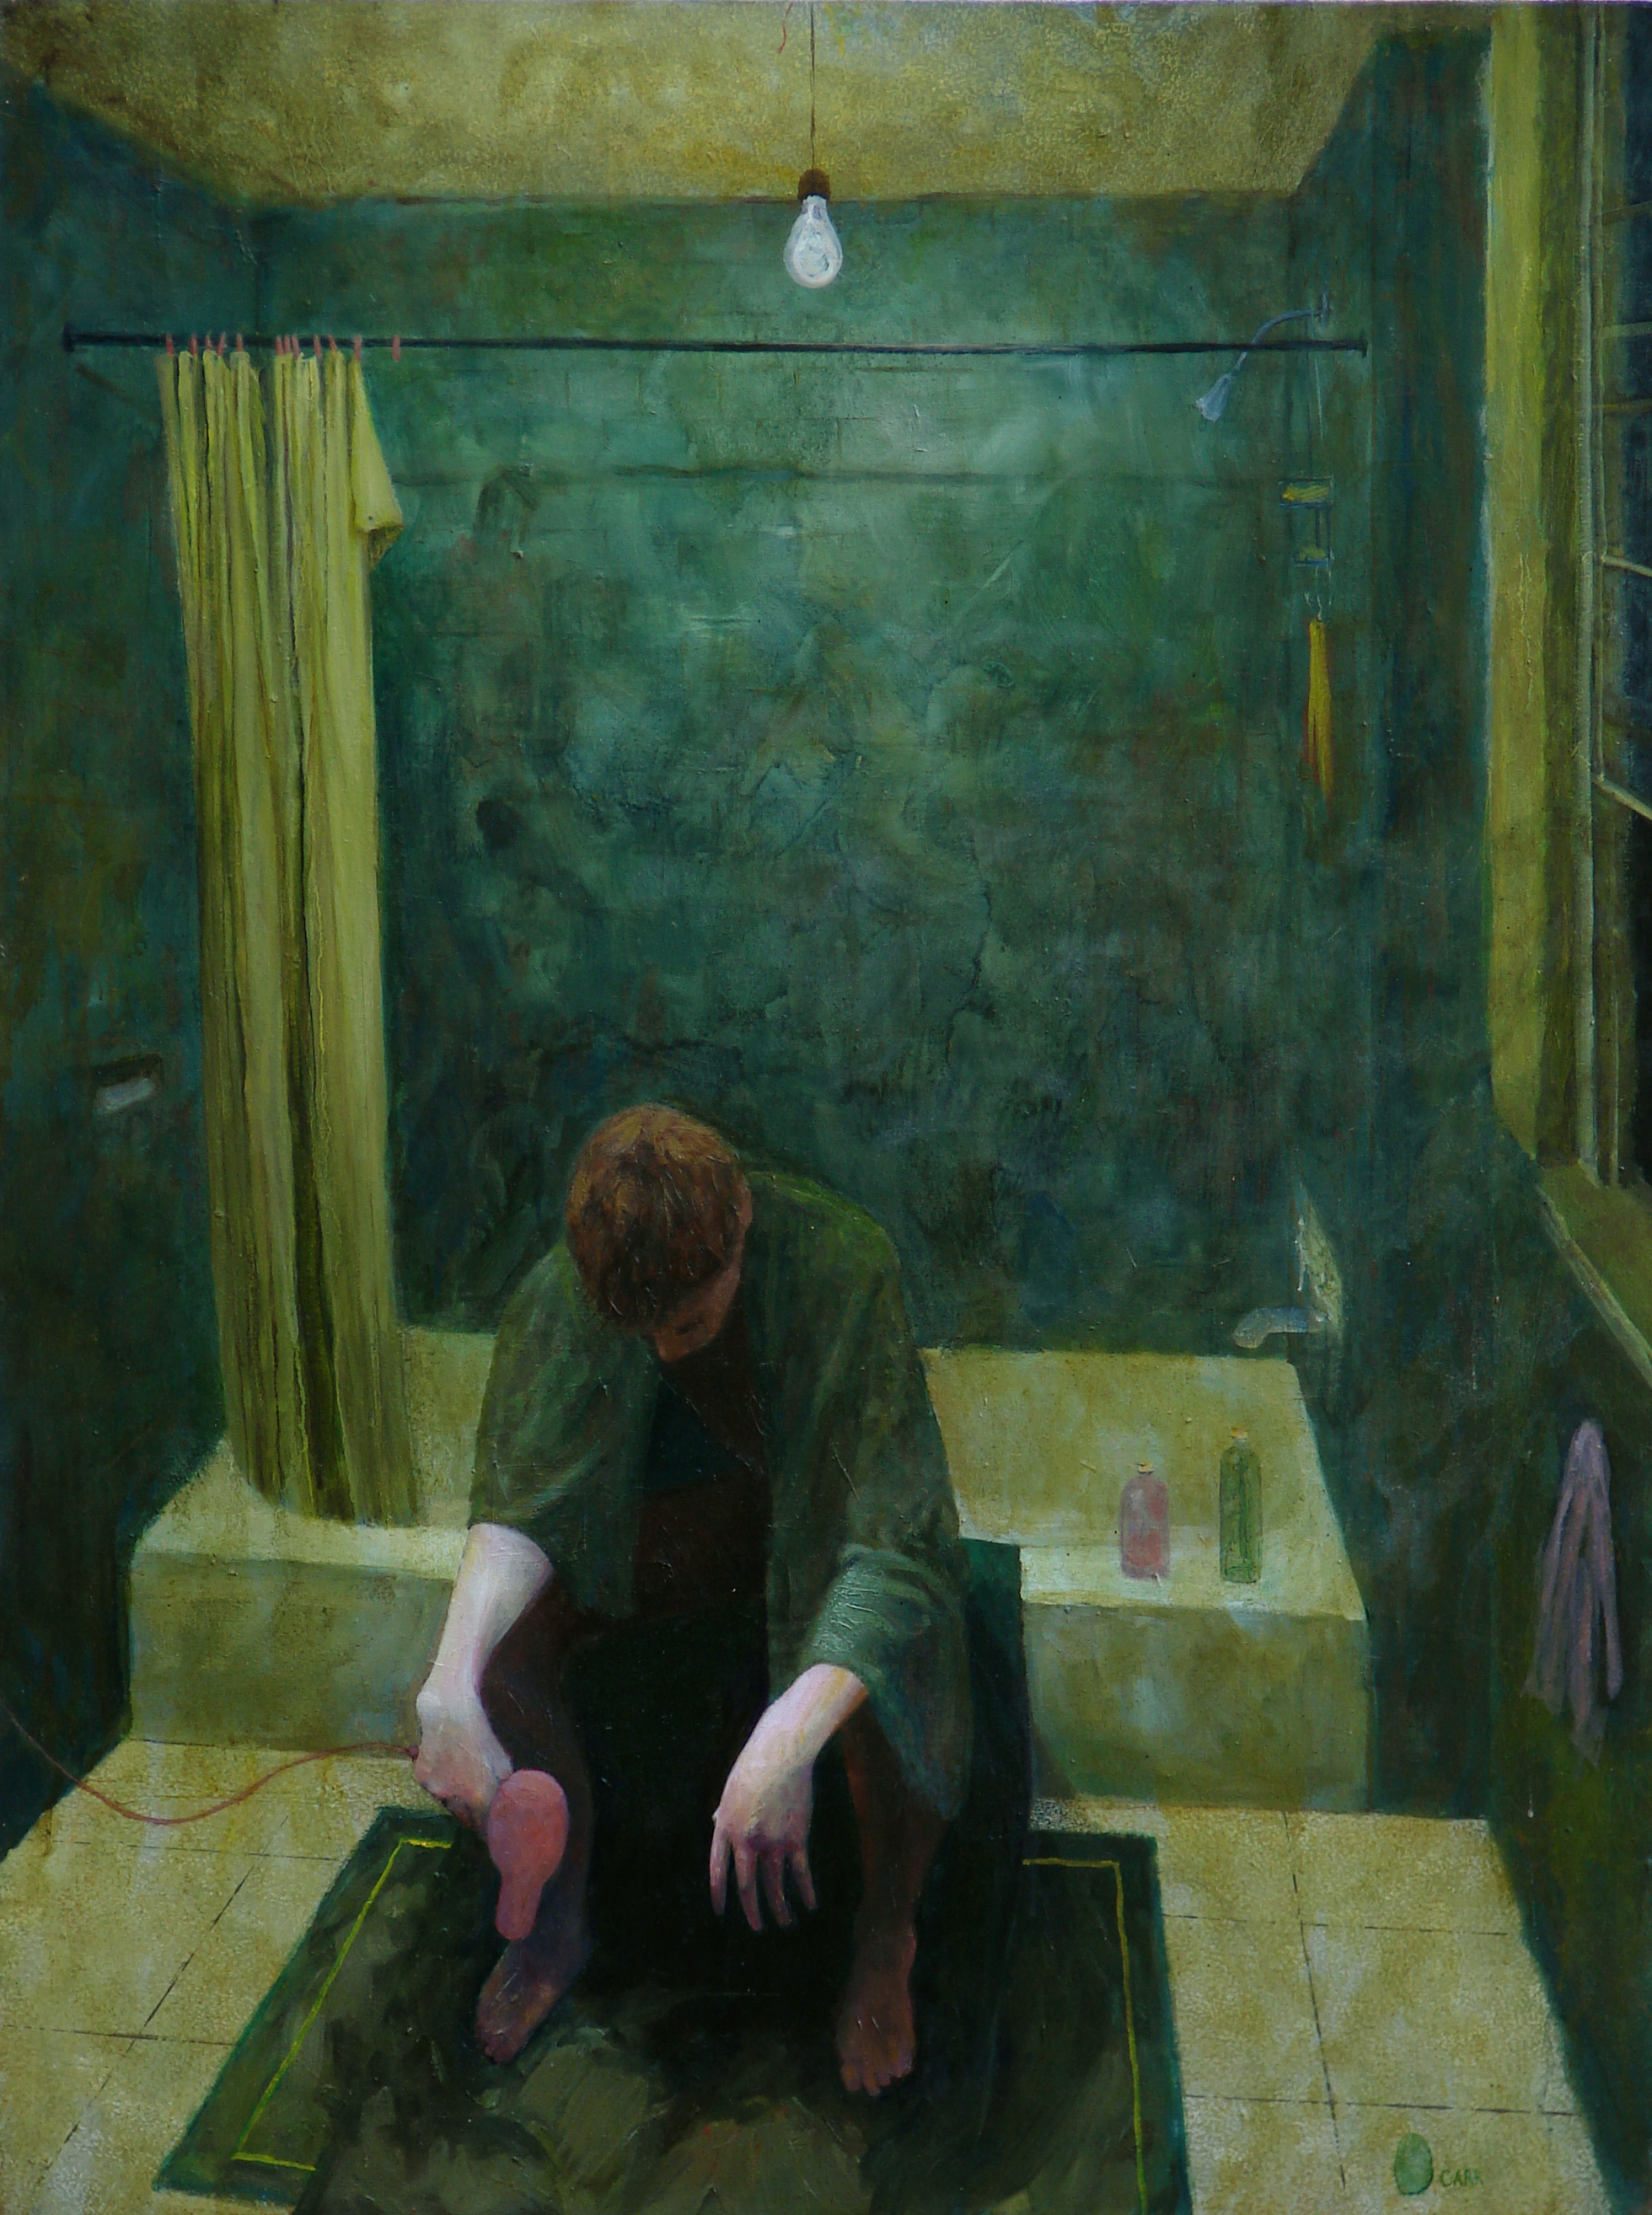 Green Bathroom, Oil, 40x30